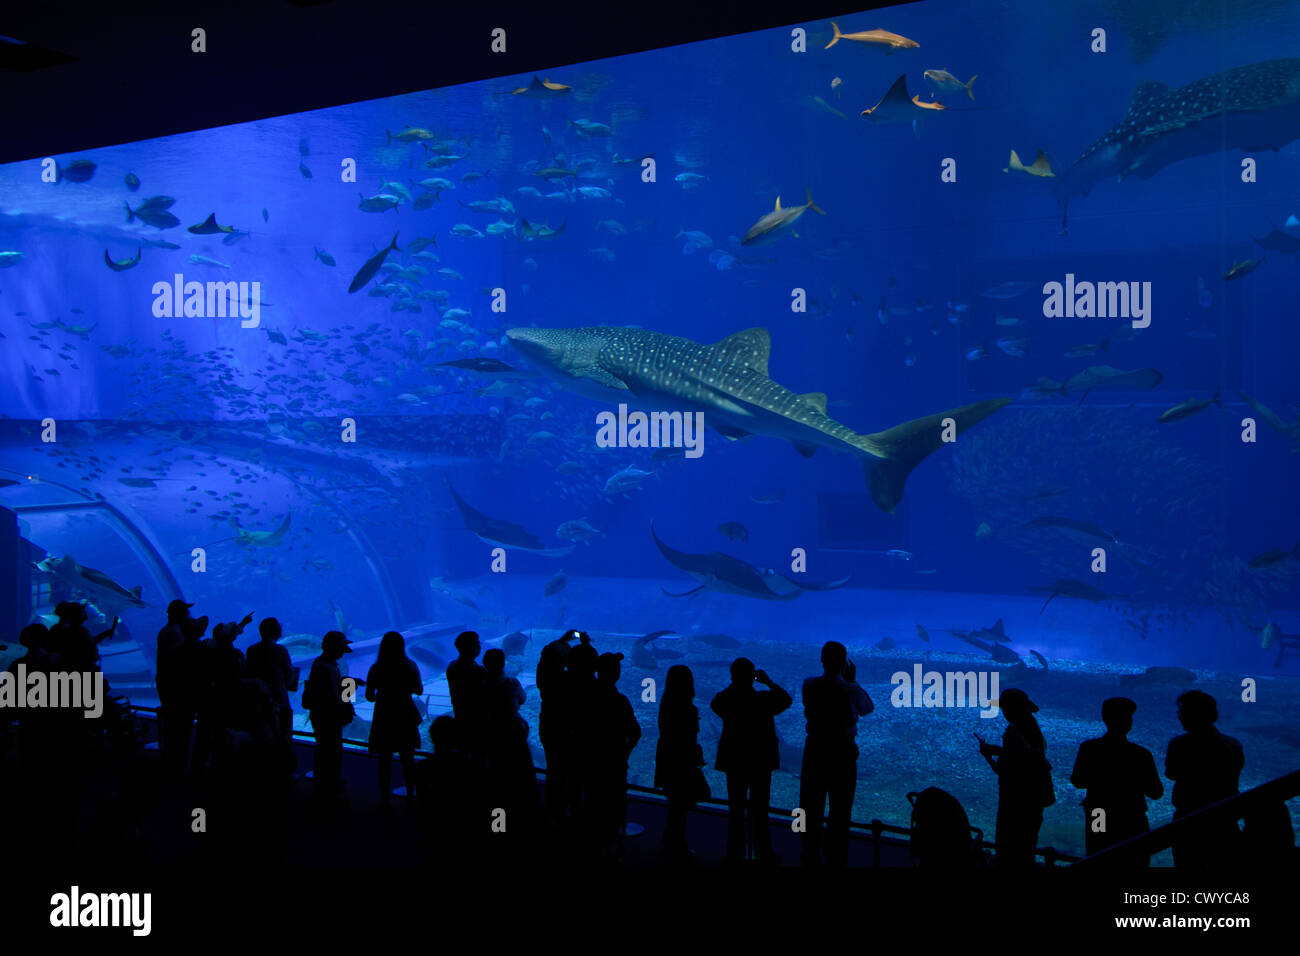 Giant Whale Sharks dwarf silhouetted visitors to the Churaumi Aquarium in Okinawa, Japan. Stock Photo